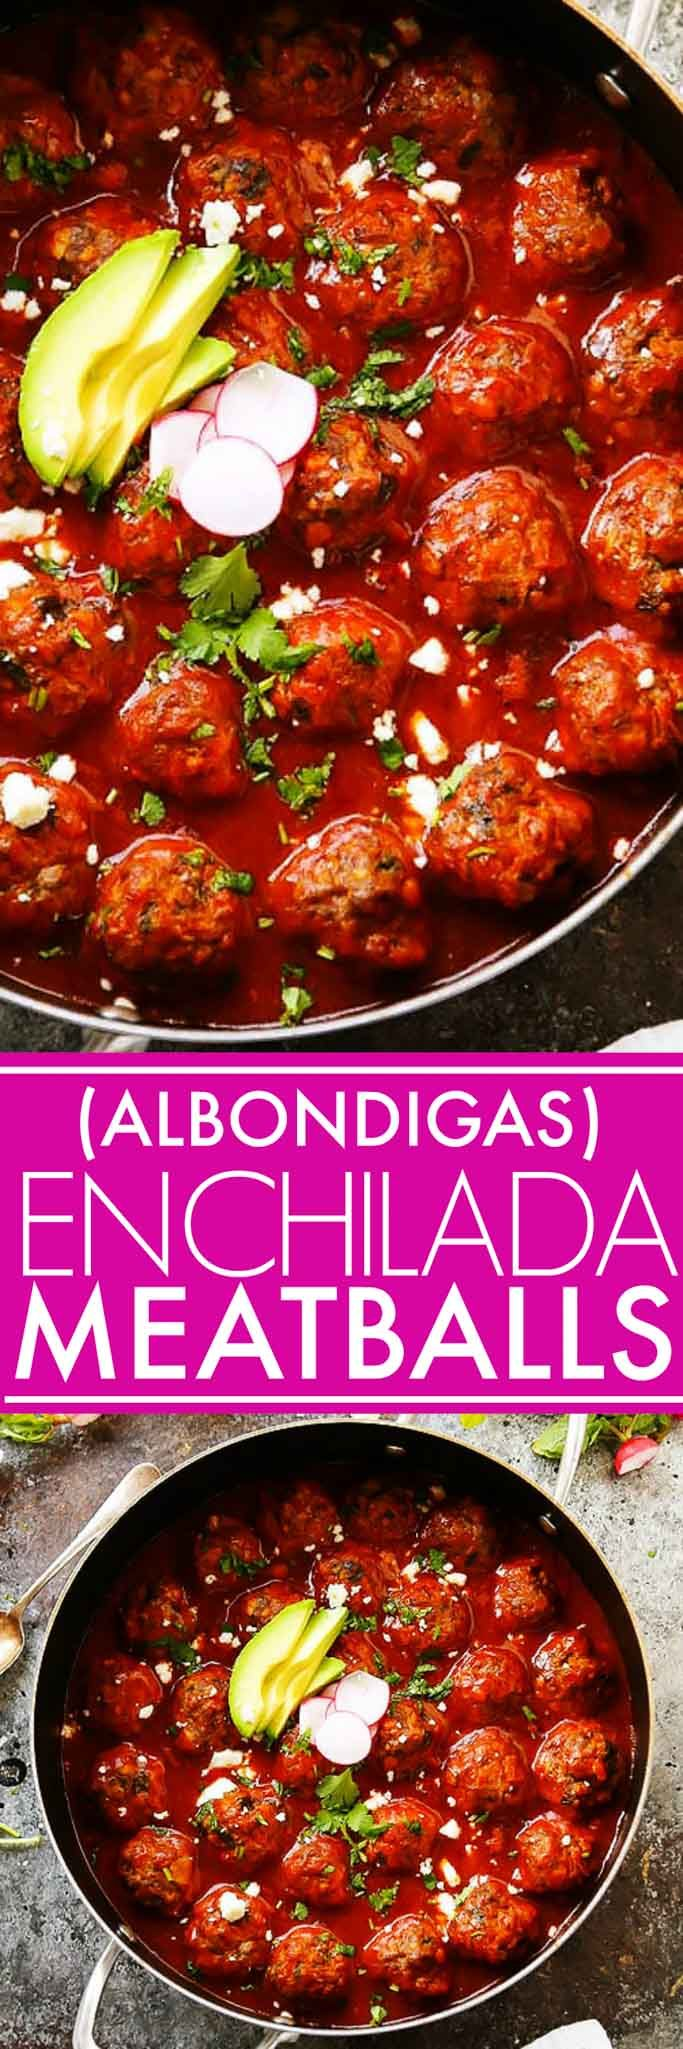 These Meatballs in Enchilada Sauce - or Albondigas - simmer in a richly spiced tomato sauce and are topped with lots of melty cheese. Served taco-style in tortillas with your favorite toppings. | platingsandpairings.com